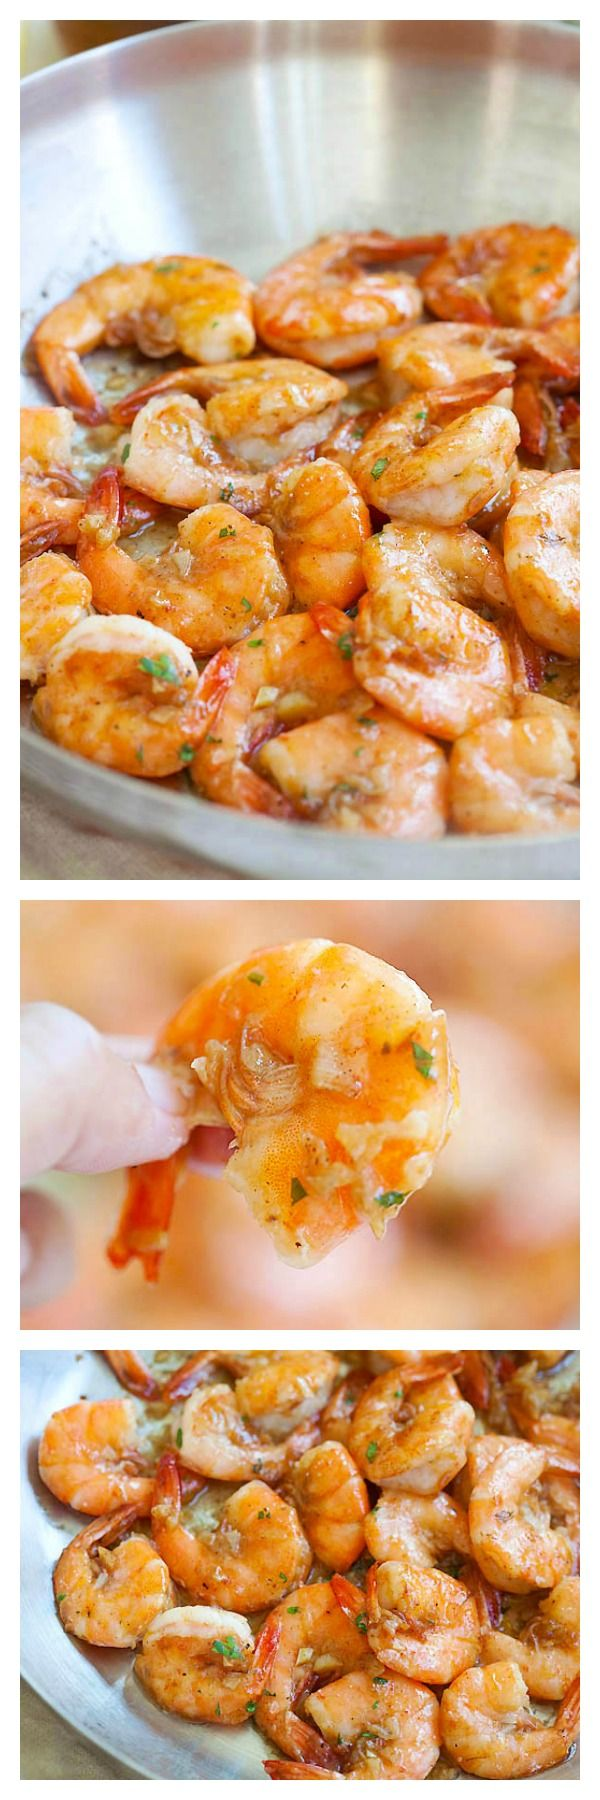 Hawaiian shrimp scampi (garlic butter shrimp) made famous by Giovanni's shrimp truck. Easy shrimp scampi recipe using shrimp, garlic, butter, olive oil and lemon juice, and you don't have to go to Hawaii for your fix | rasamalaysia.com